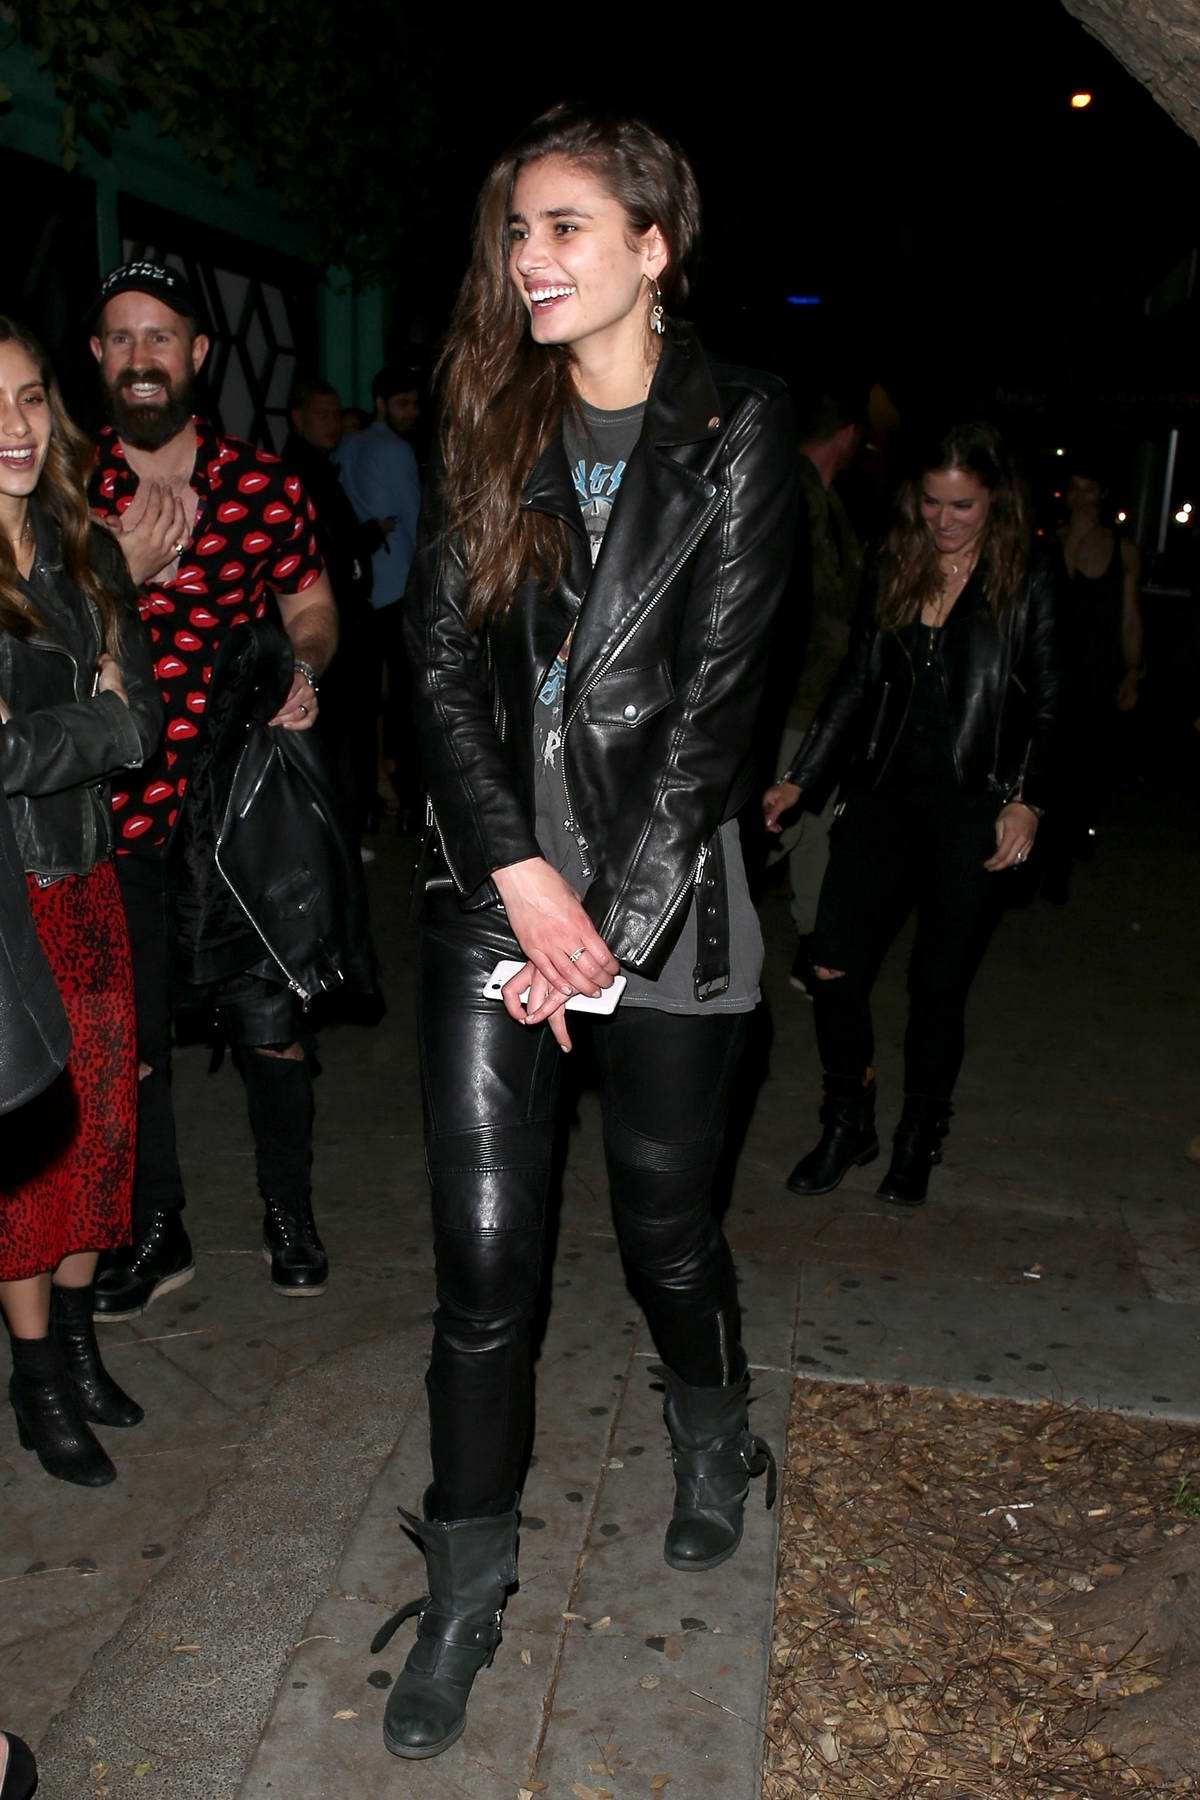 Taylor Hill is all smiles as she leaves the Peppermint nightclub in West Hollywood, Los Angeles